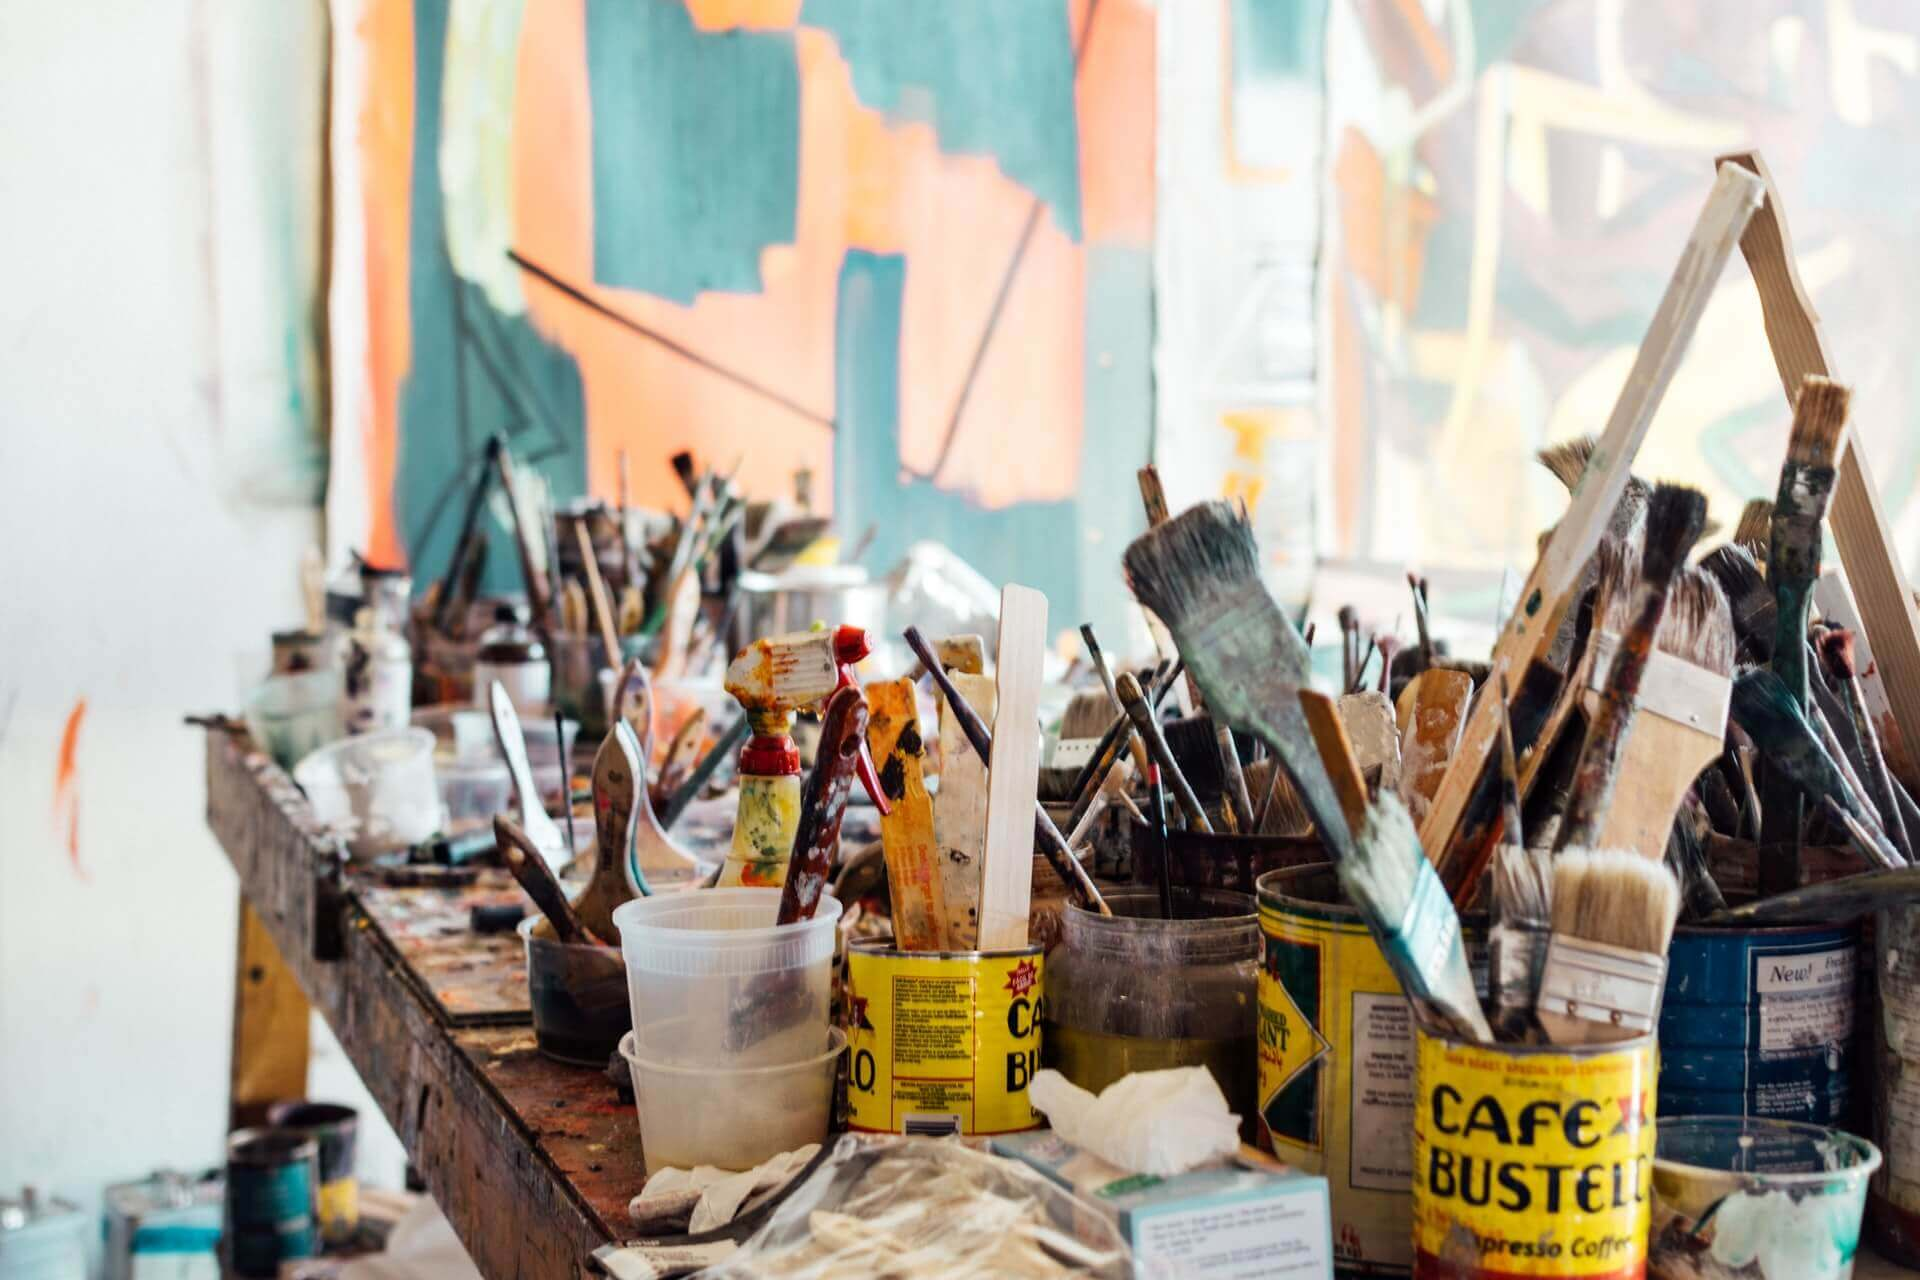 An image of assorted-colored paint brushes on brown wooden table top